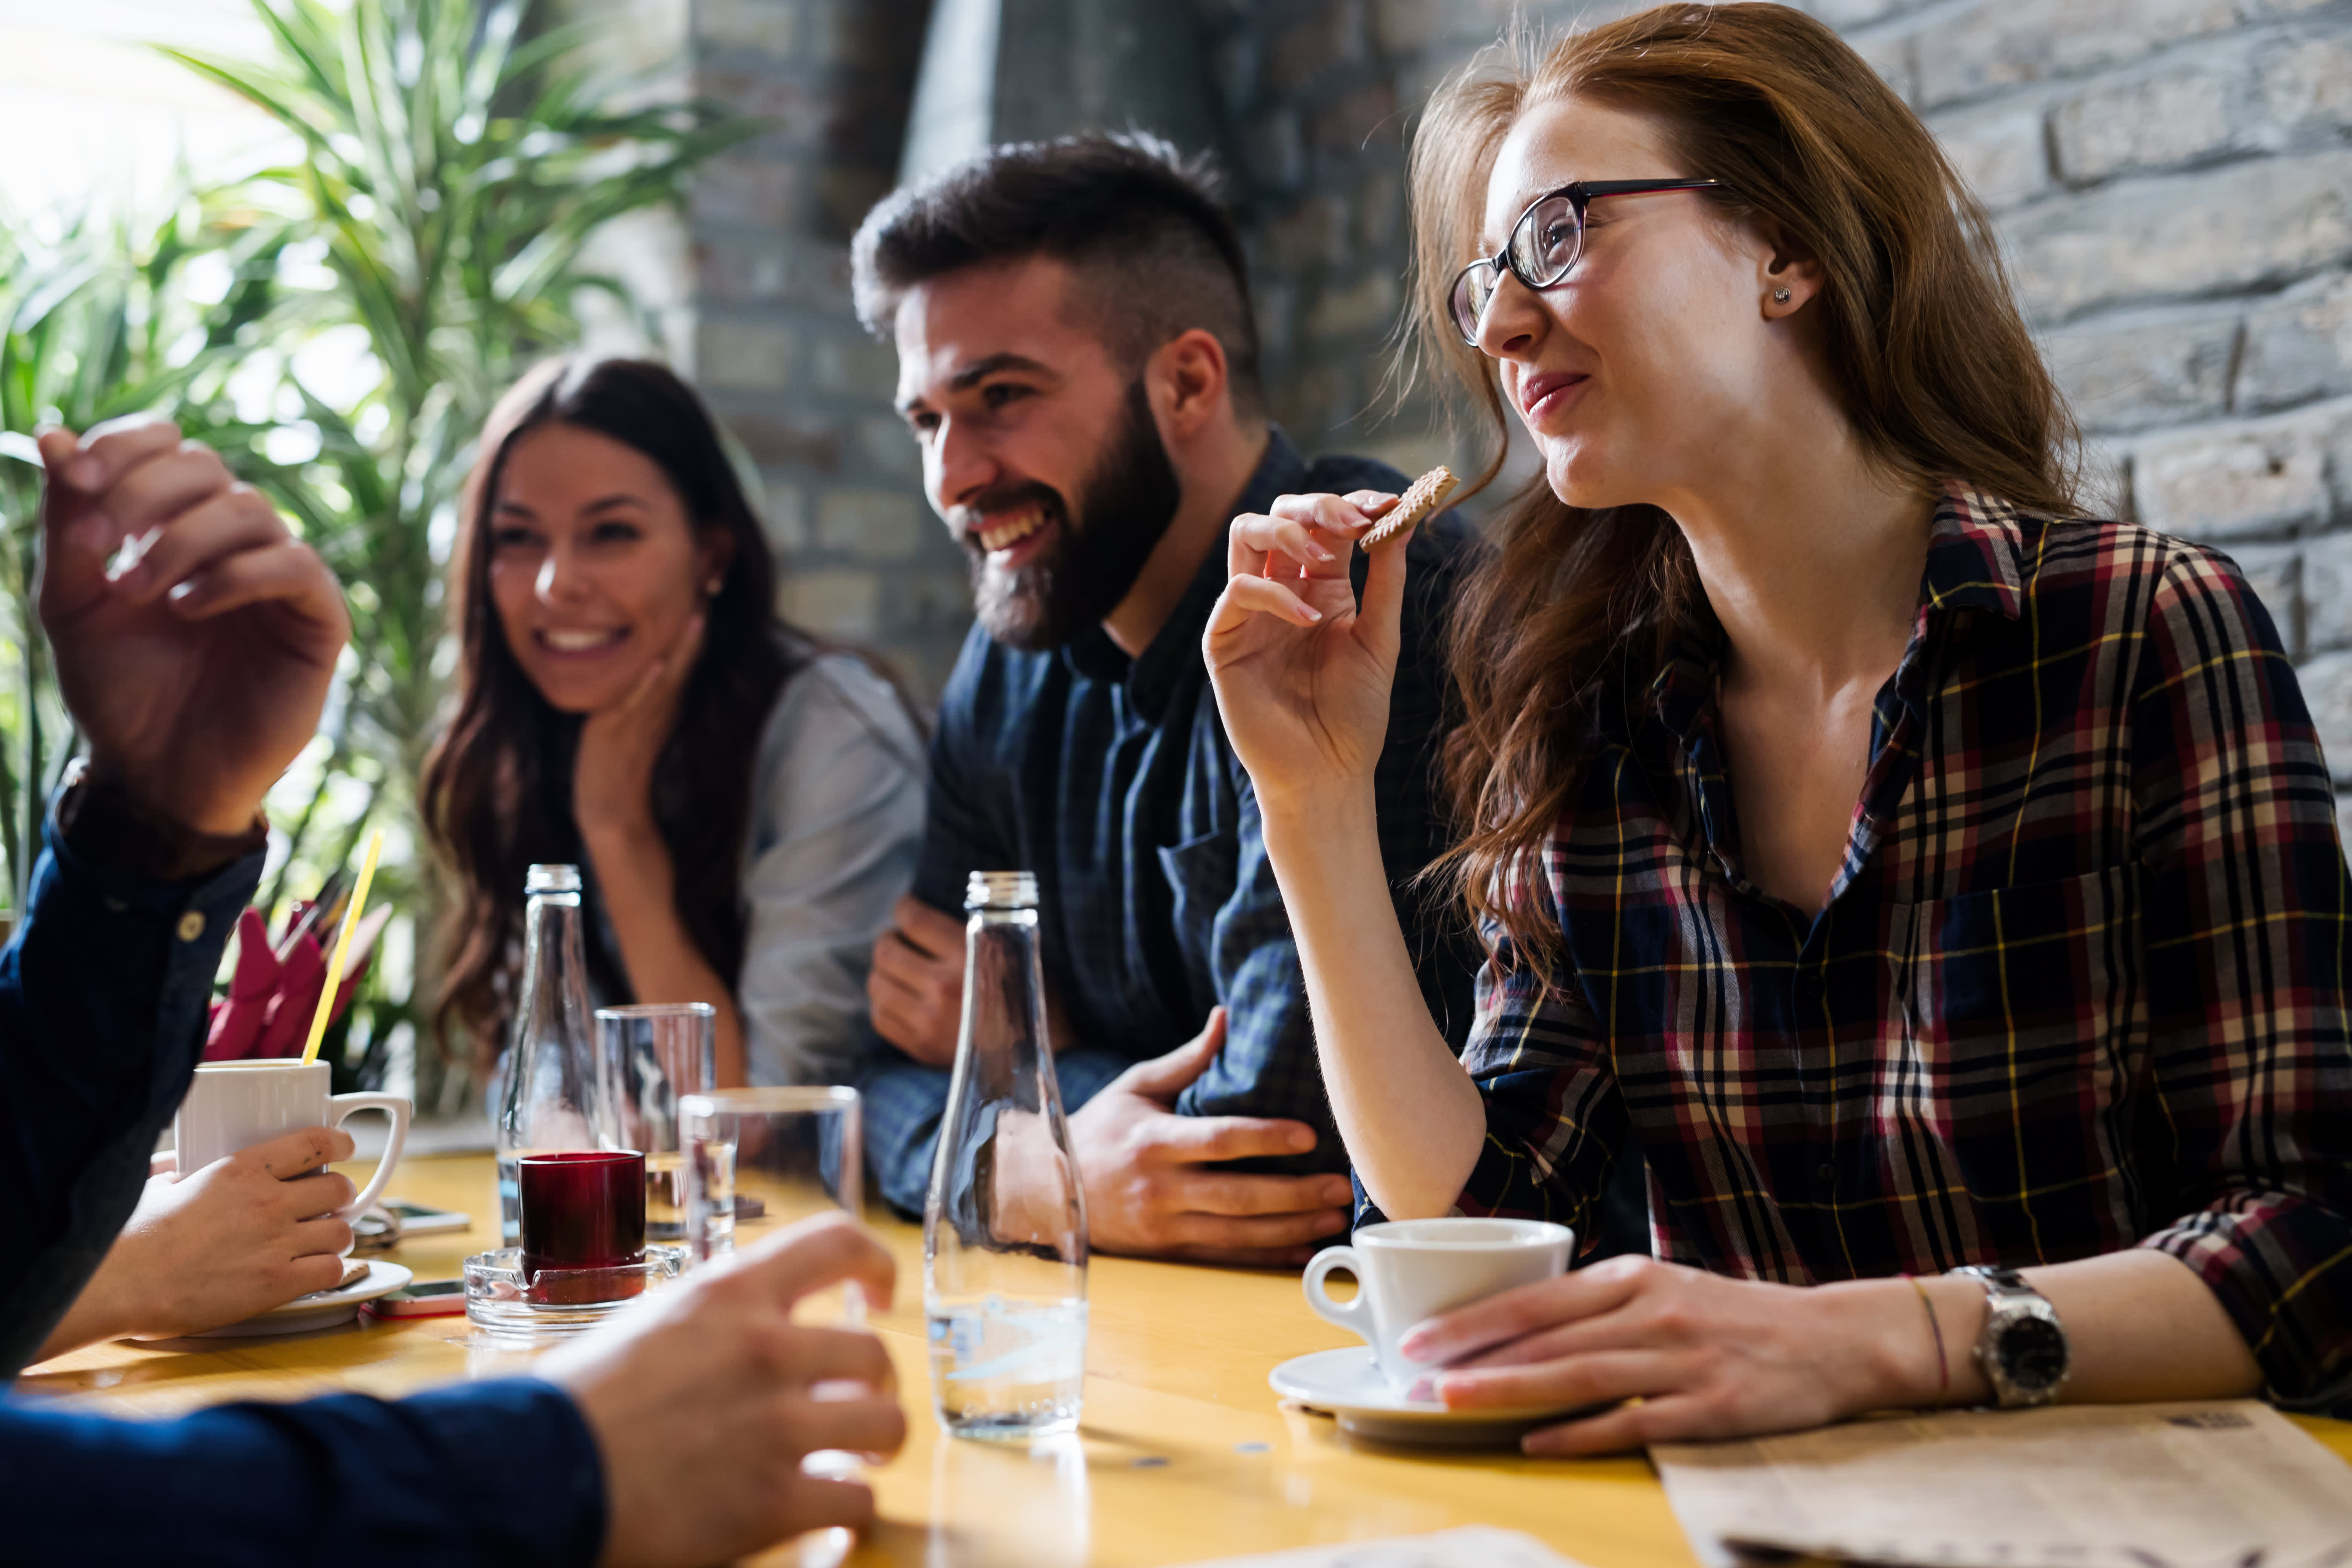 51% of Americans are planning to eat out less in 2020—here's how to save money without cutting costs